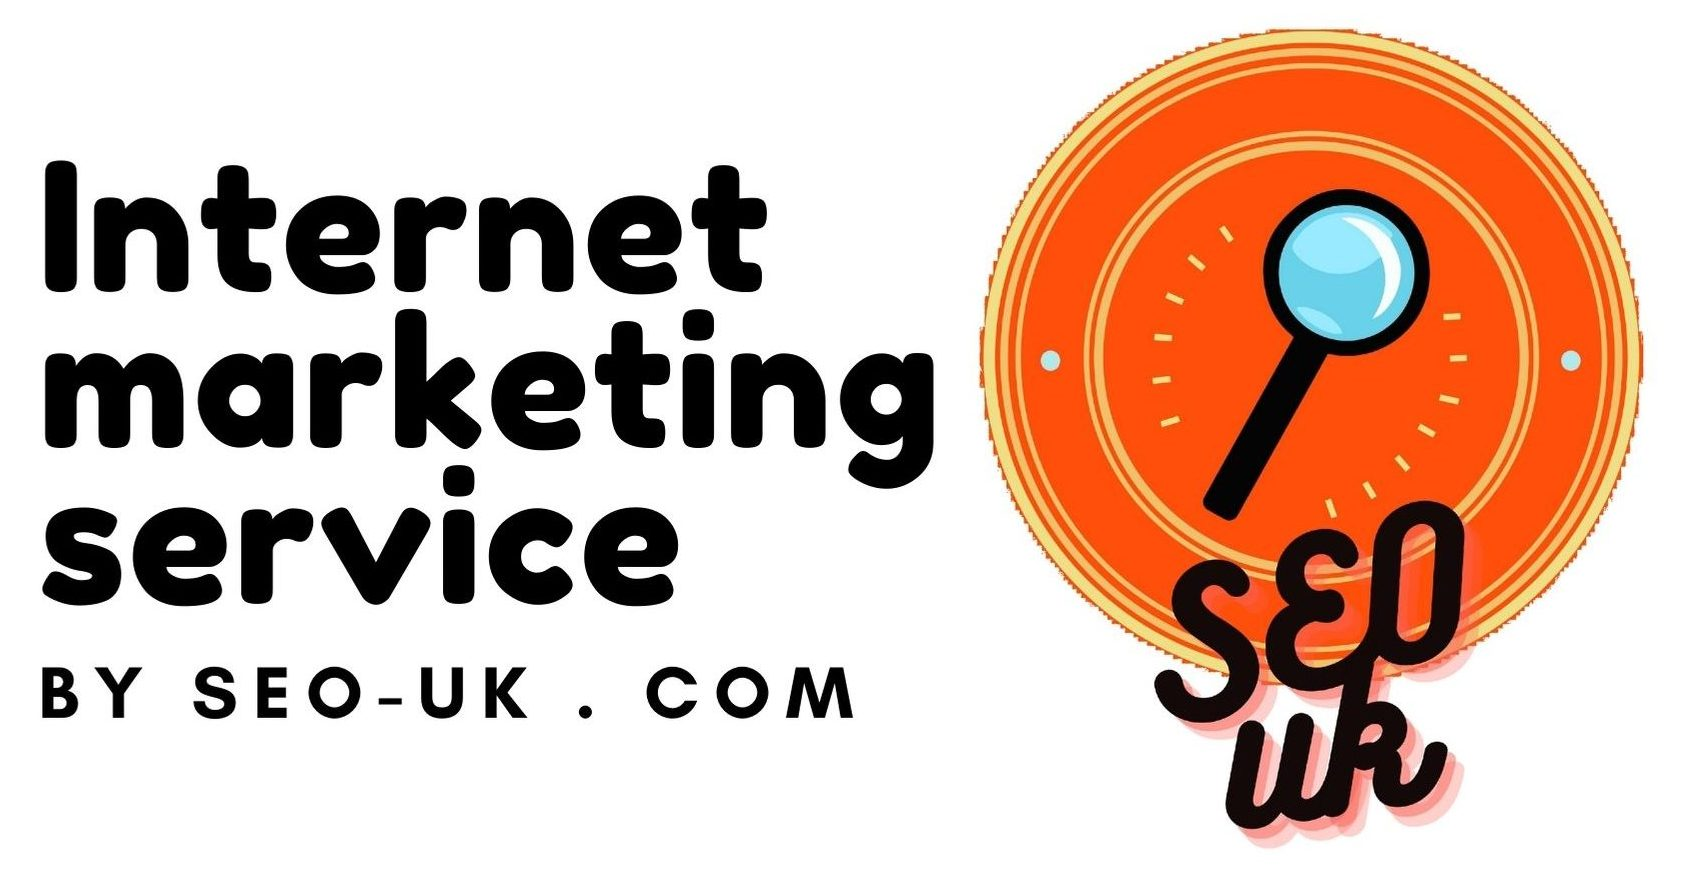 internet marketing service - Seo Uk _ Is a Company with specialist experts in Search Engine Optimisation.